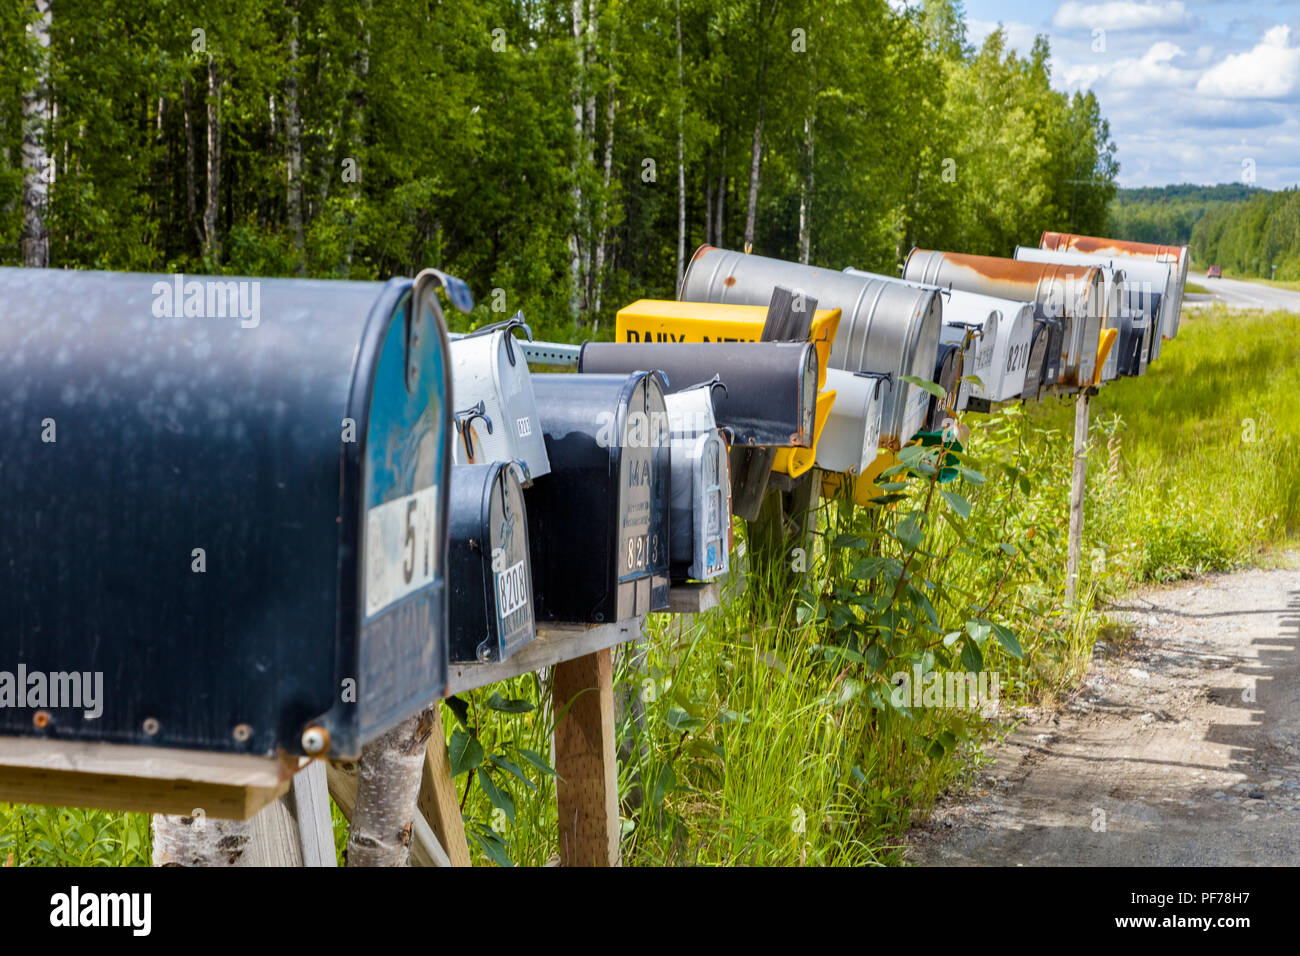 Line of mailboxes along side road - Stock Image